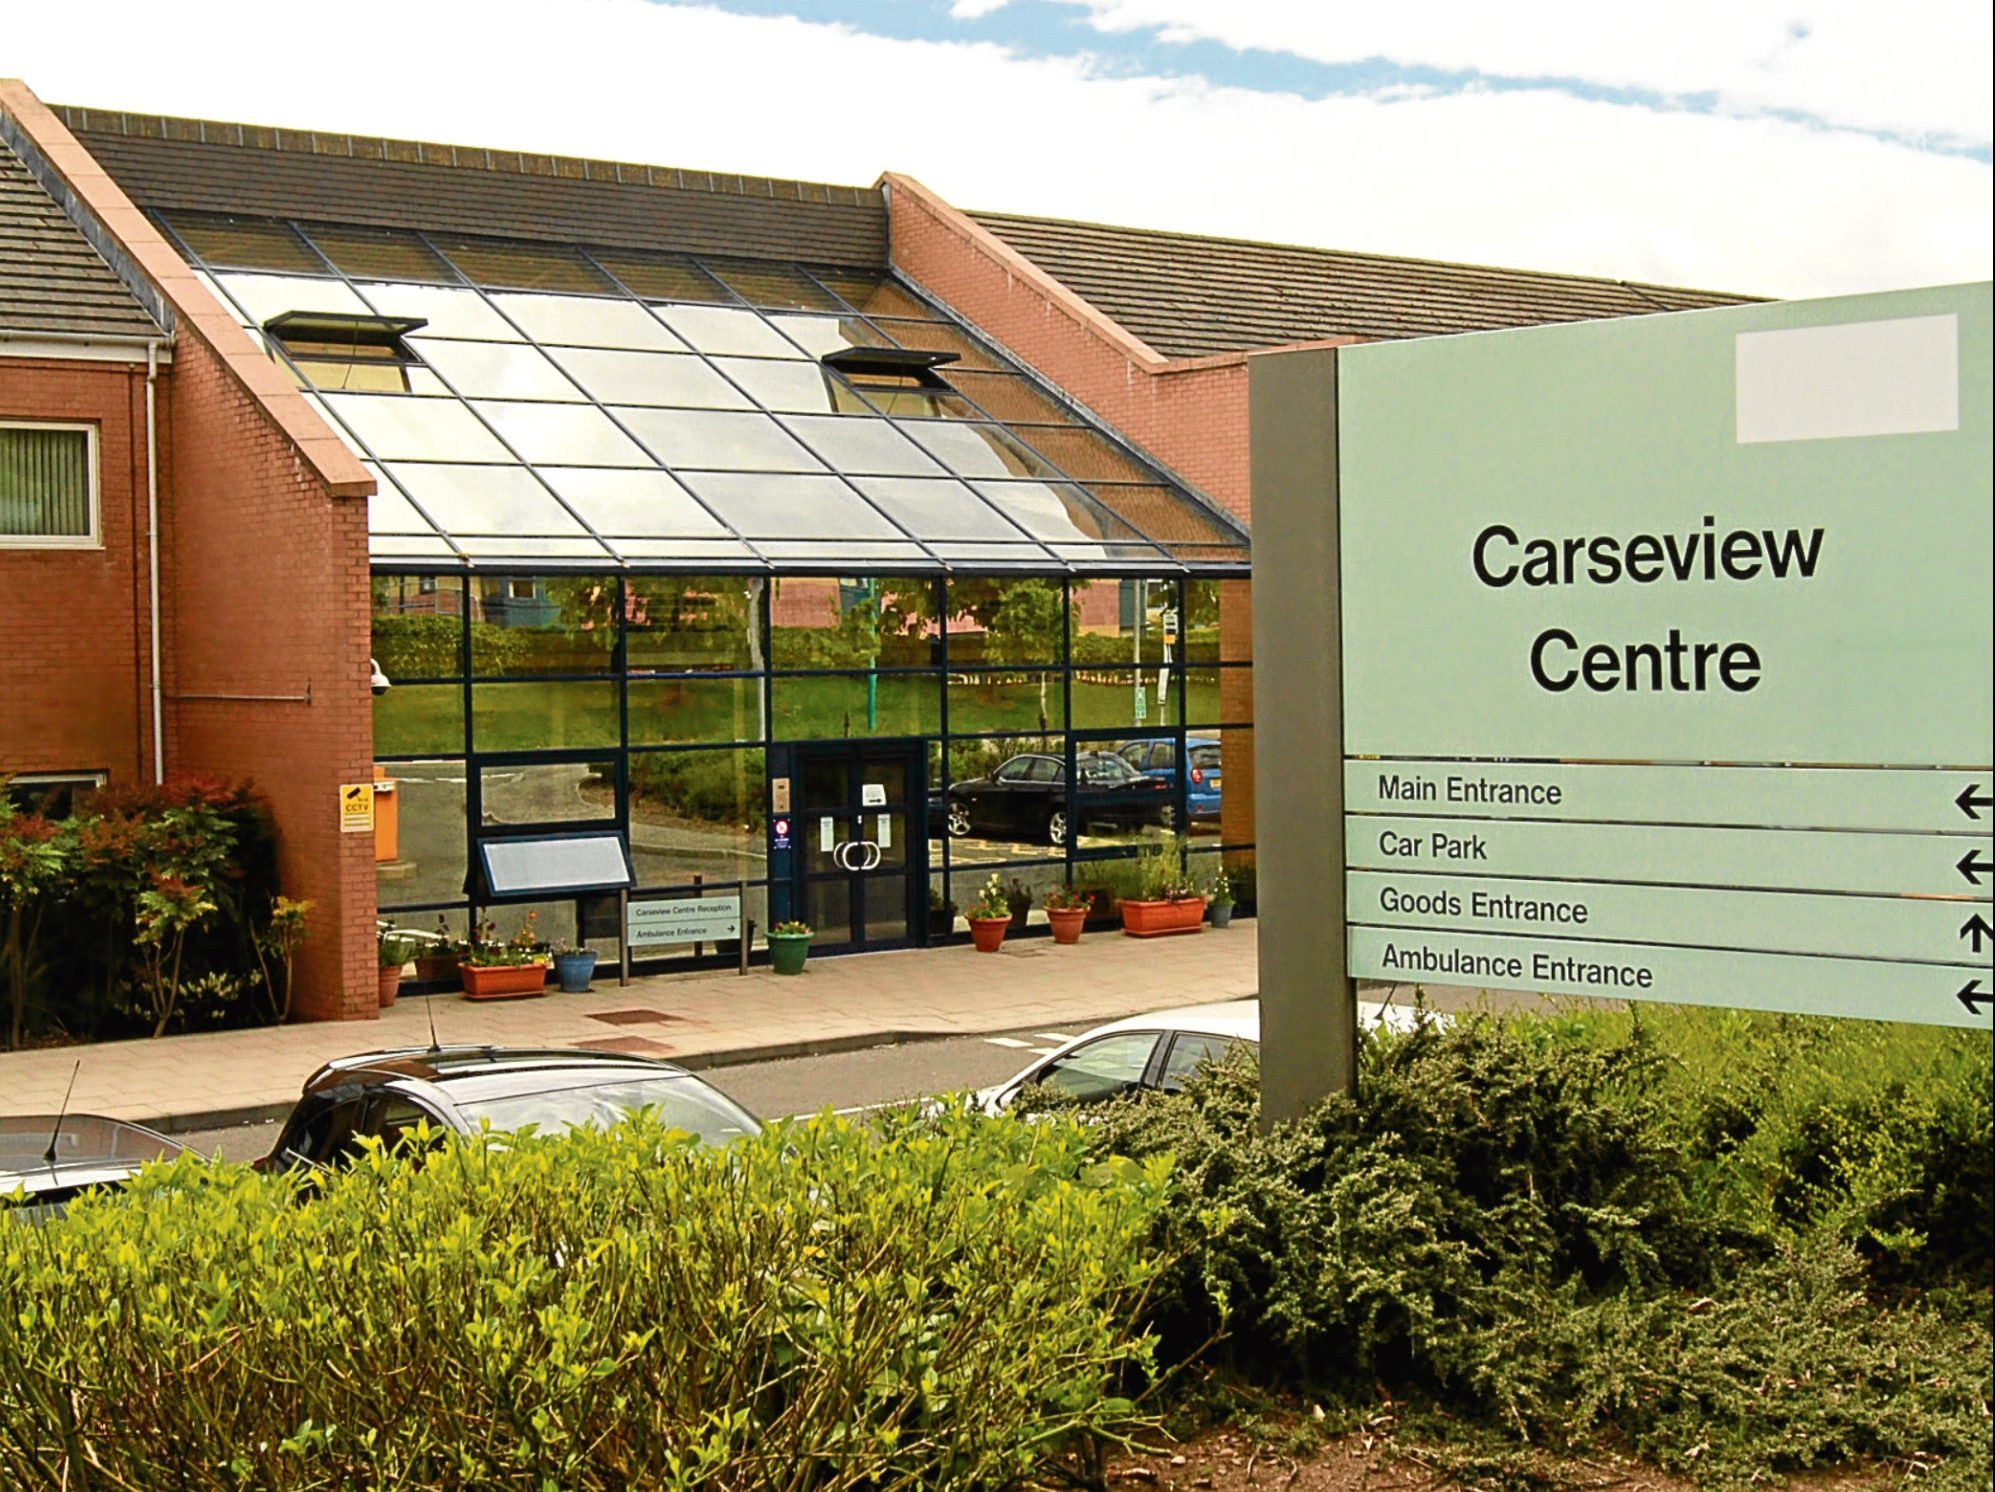 The Carseview Centre